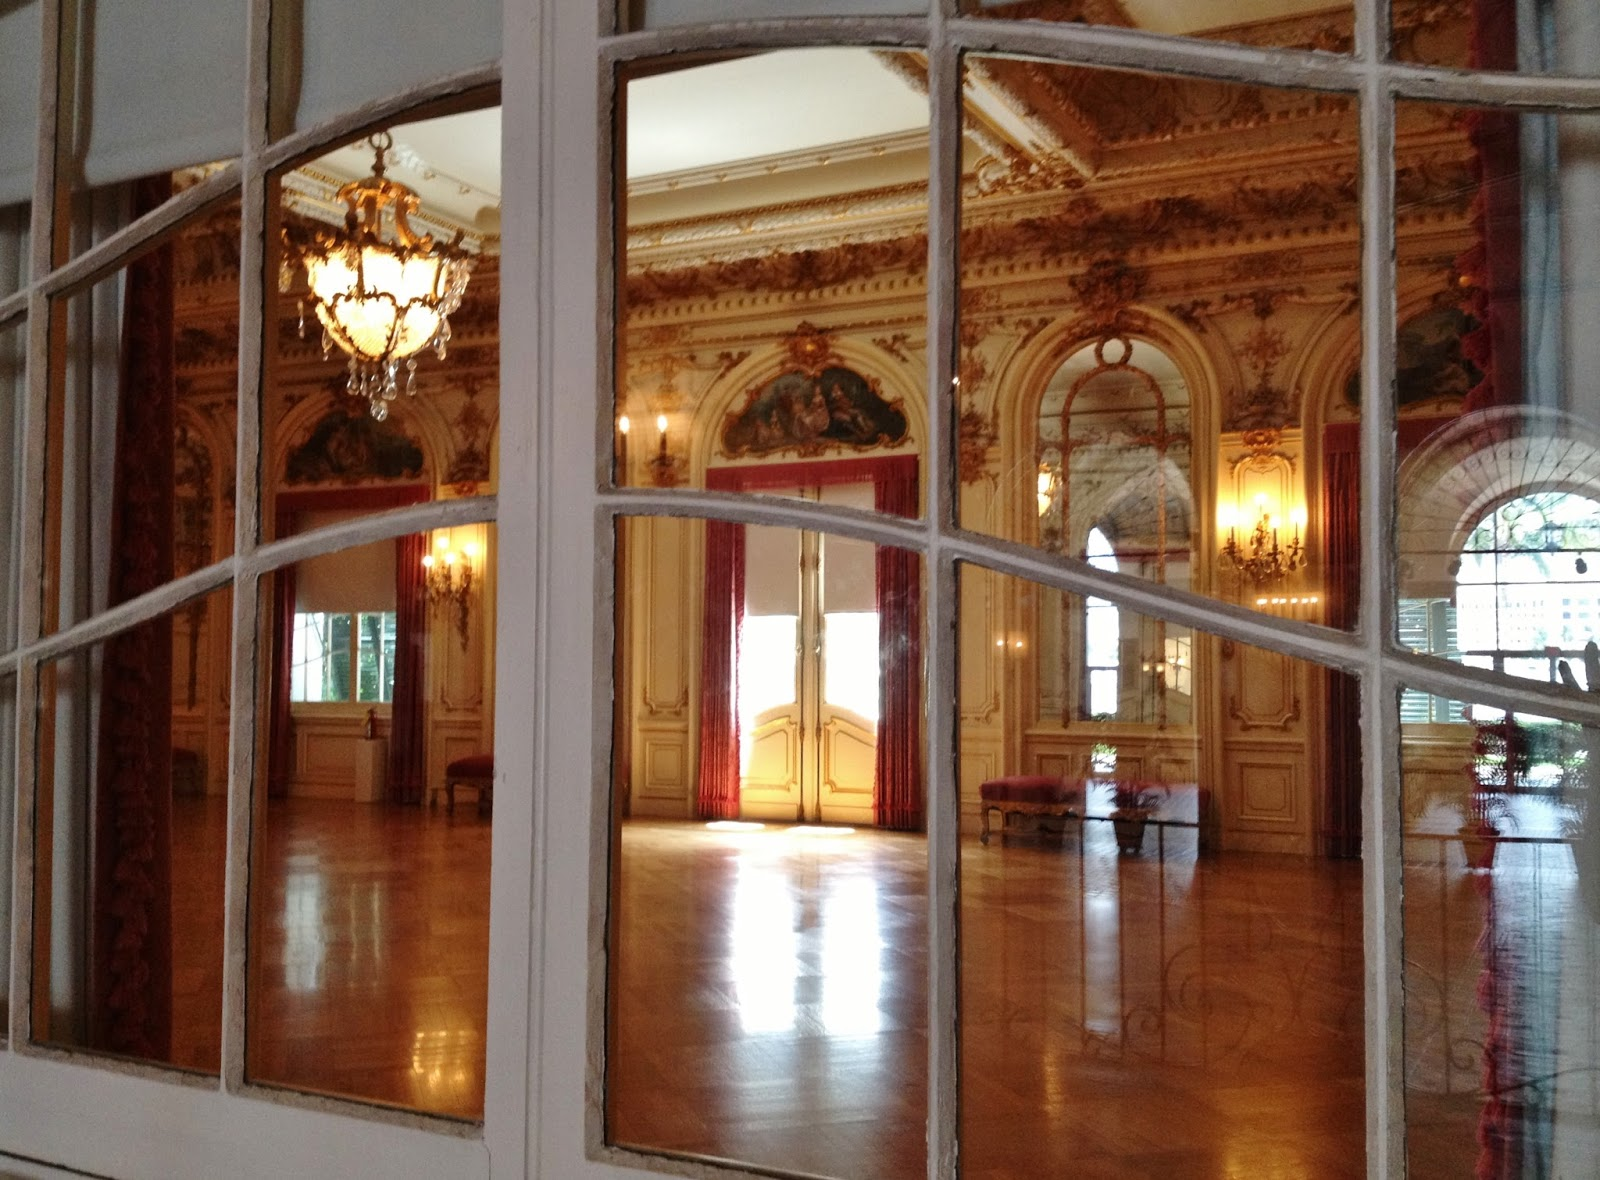 Looking Through The Curved Panes Of The Windows Outside The Grand Ballroom  Makes Me Think Back To How This Elegant Room Would Have Been Filled With  Laughter ...